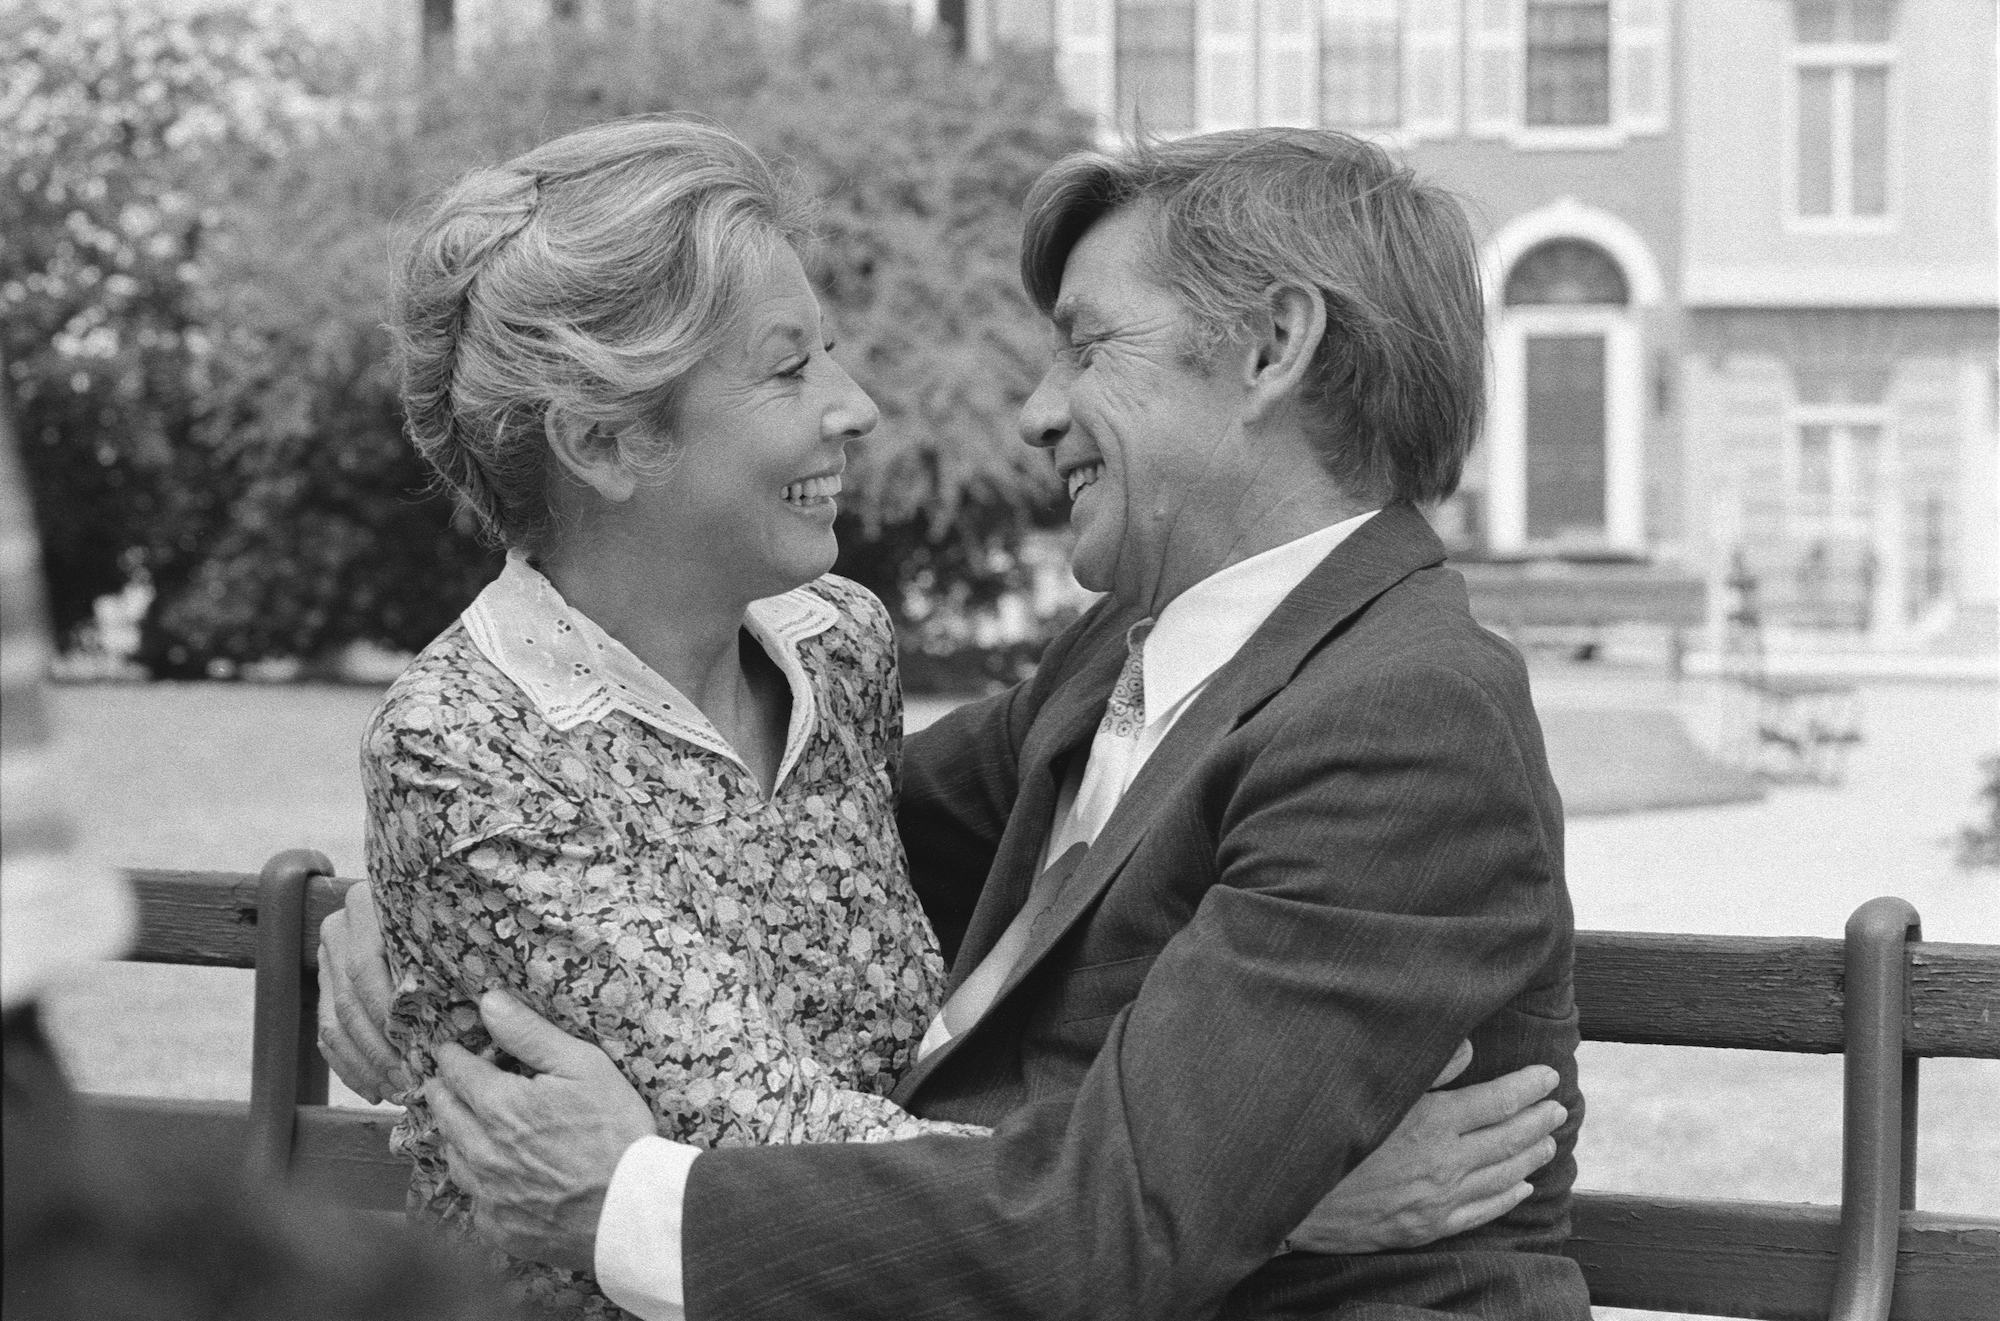 (L-R) Michael Learned as Olivia Walton and Ralph Waite as John Walton, facing each other, embracing